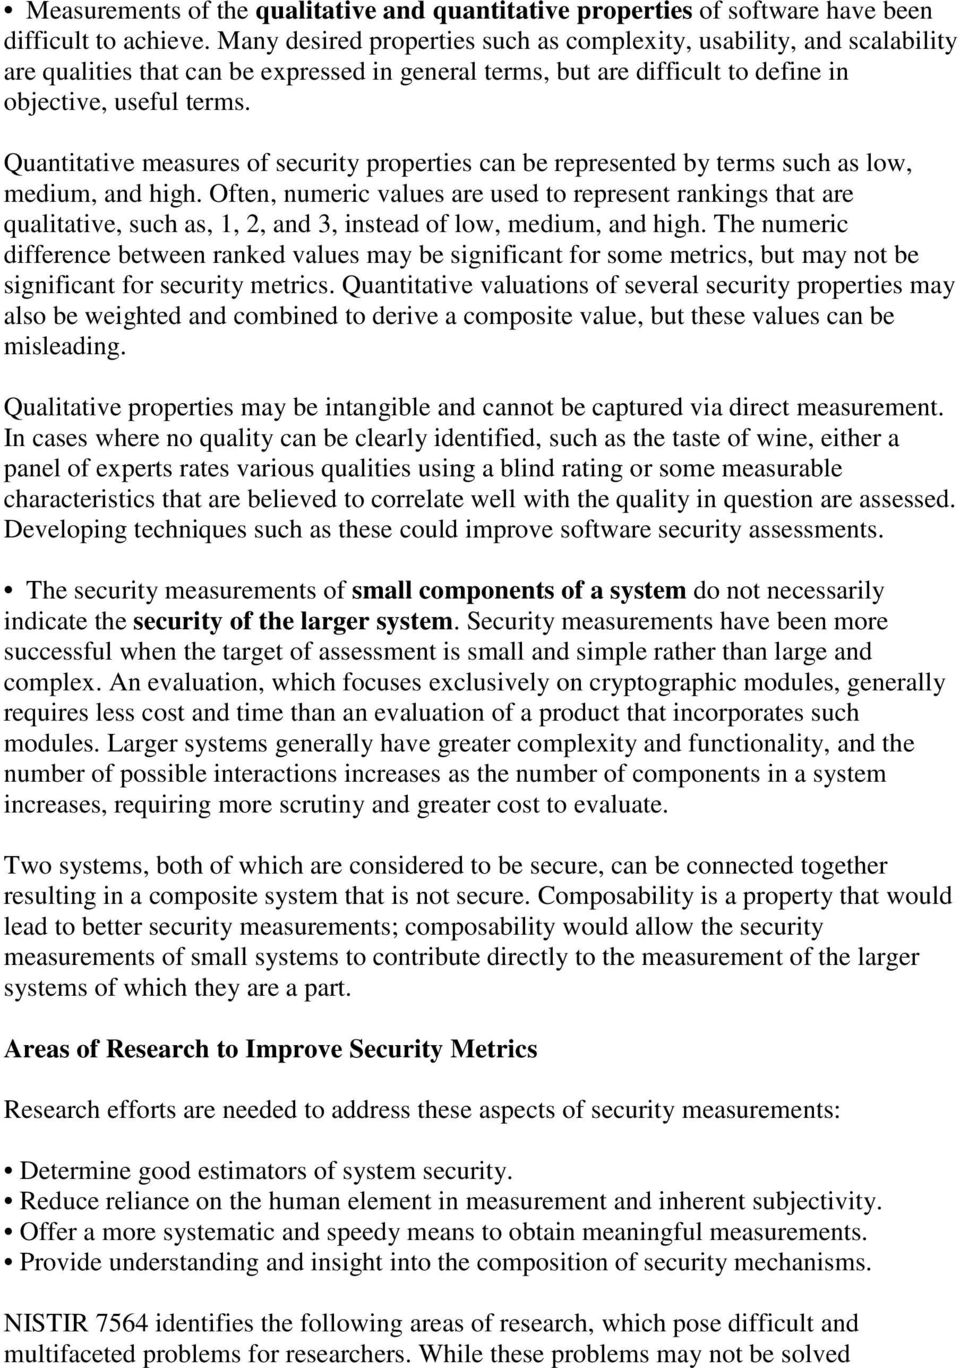 Quantitative measures of security properties can be represented by terms such as low, medium, and high.